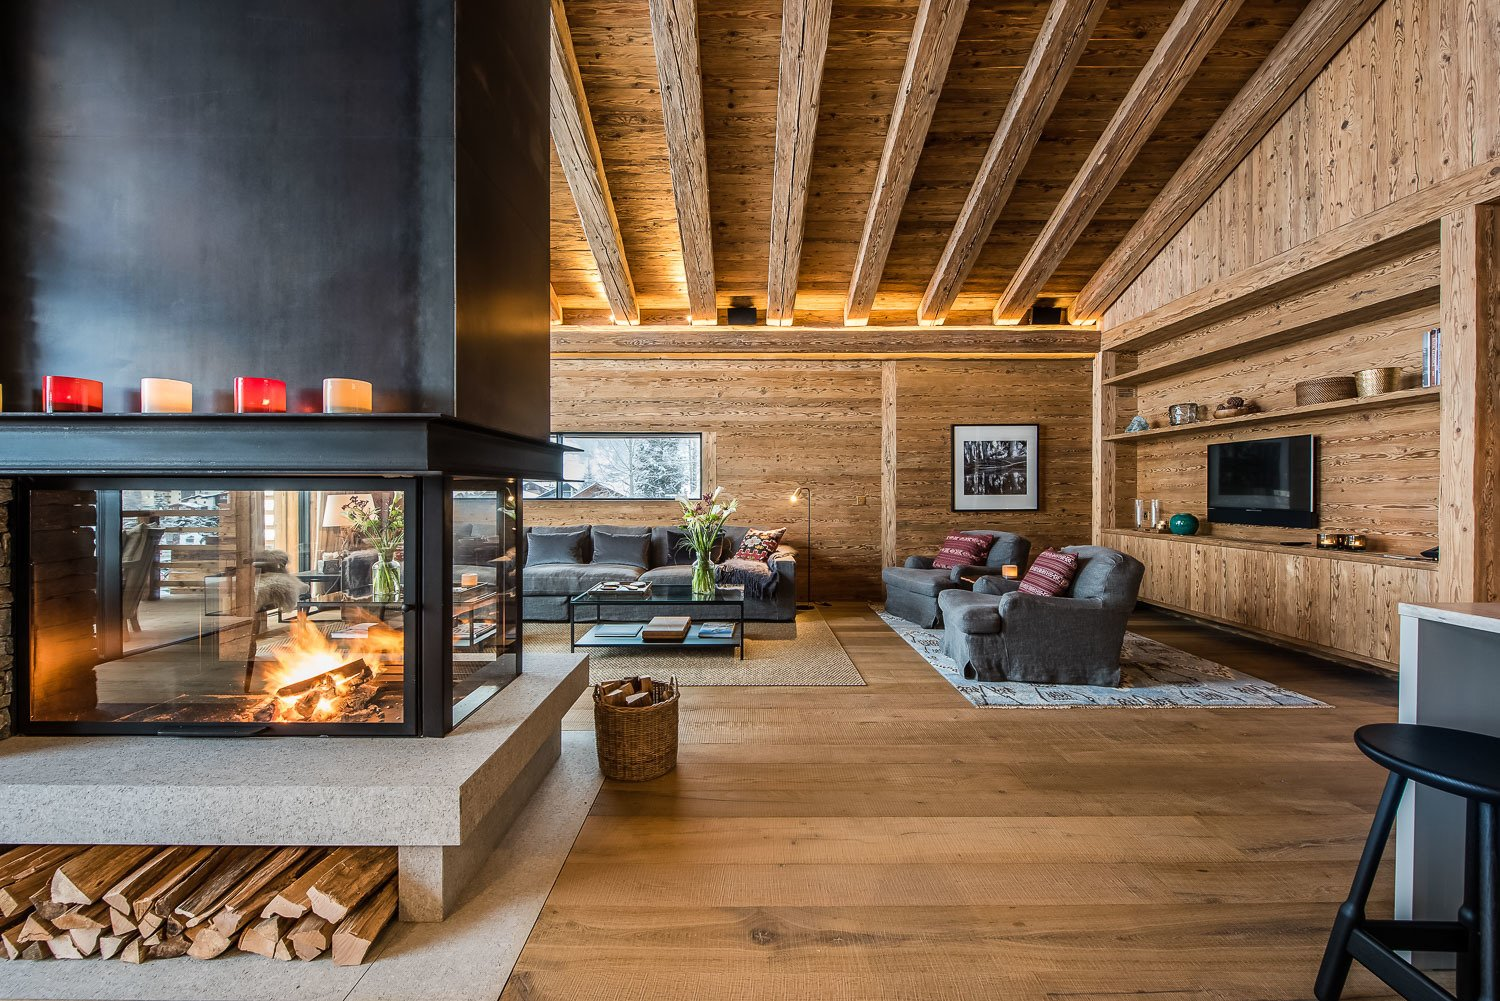 This luxurious five-bedroom villa in Zermatt is sited in the heart of the village and close to shops, the town's main railway station and the Sunnegga funicular, which will whisk you up to the ski slopes within minutes.  Photo 5 of 8 in 7 Alpine Holiday Chalets in Switzerland